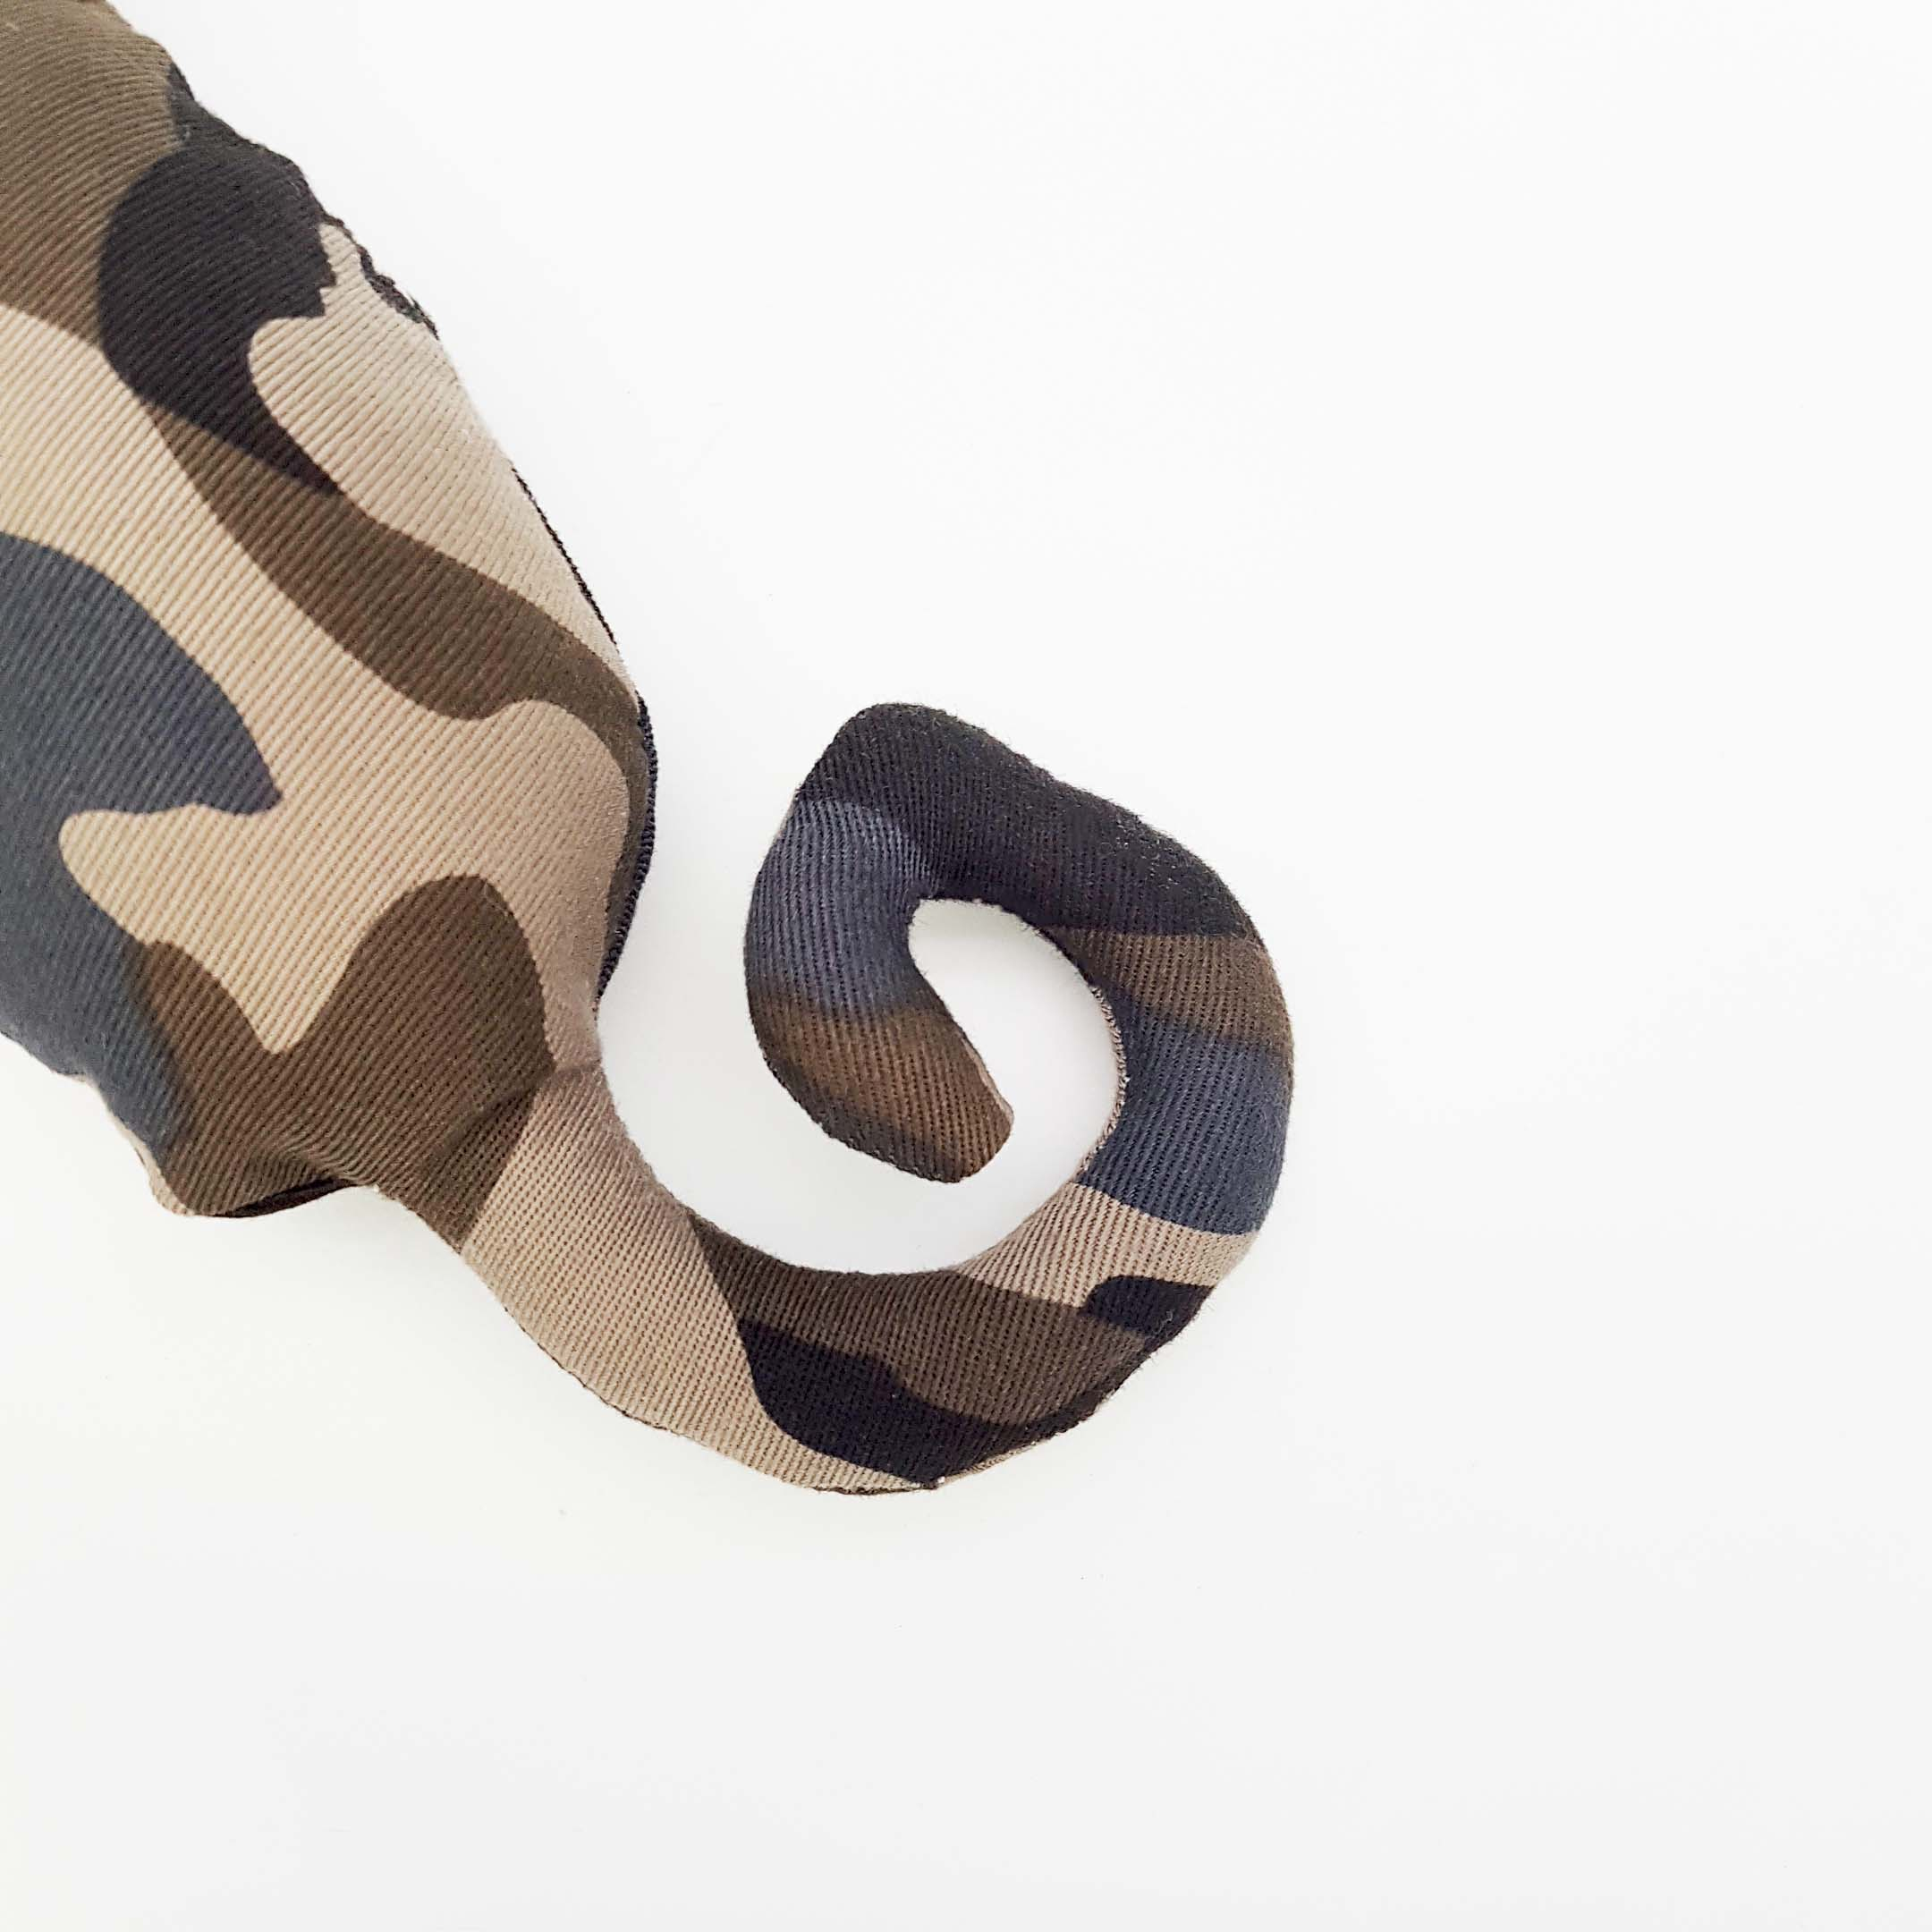 Limited Edition Premium Camo Love Cats Plushy Sneaky Whiskers